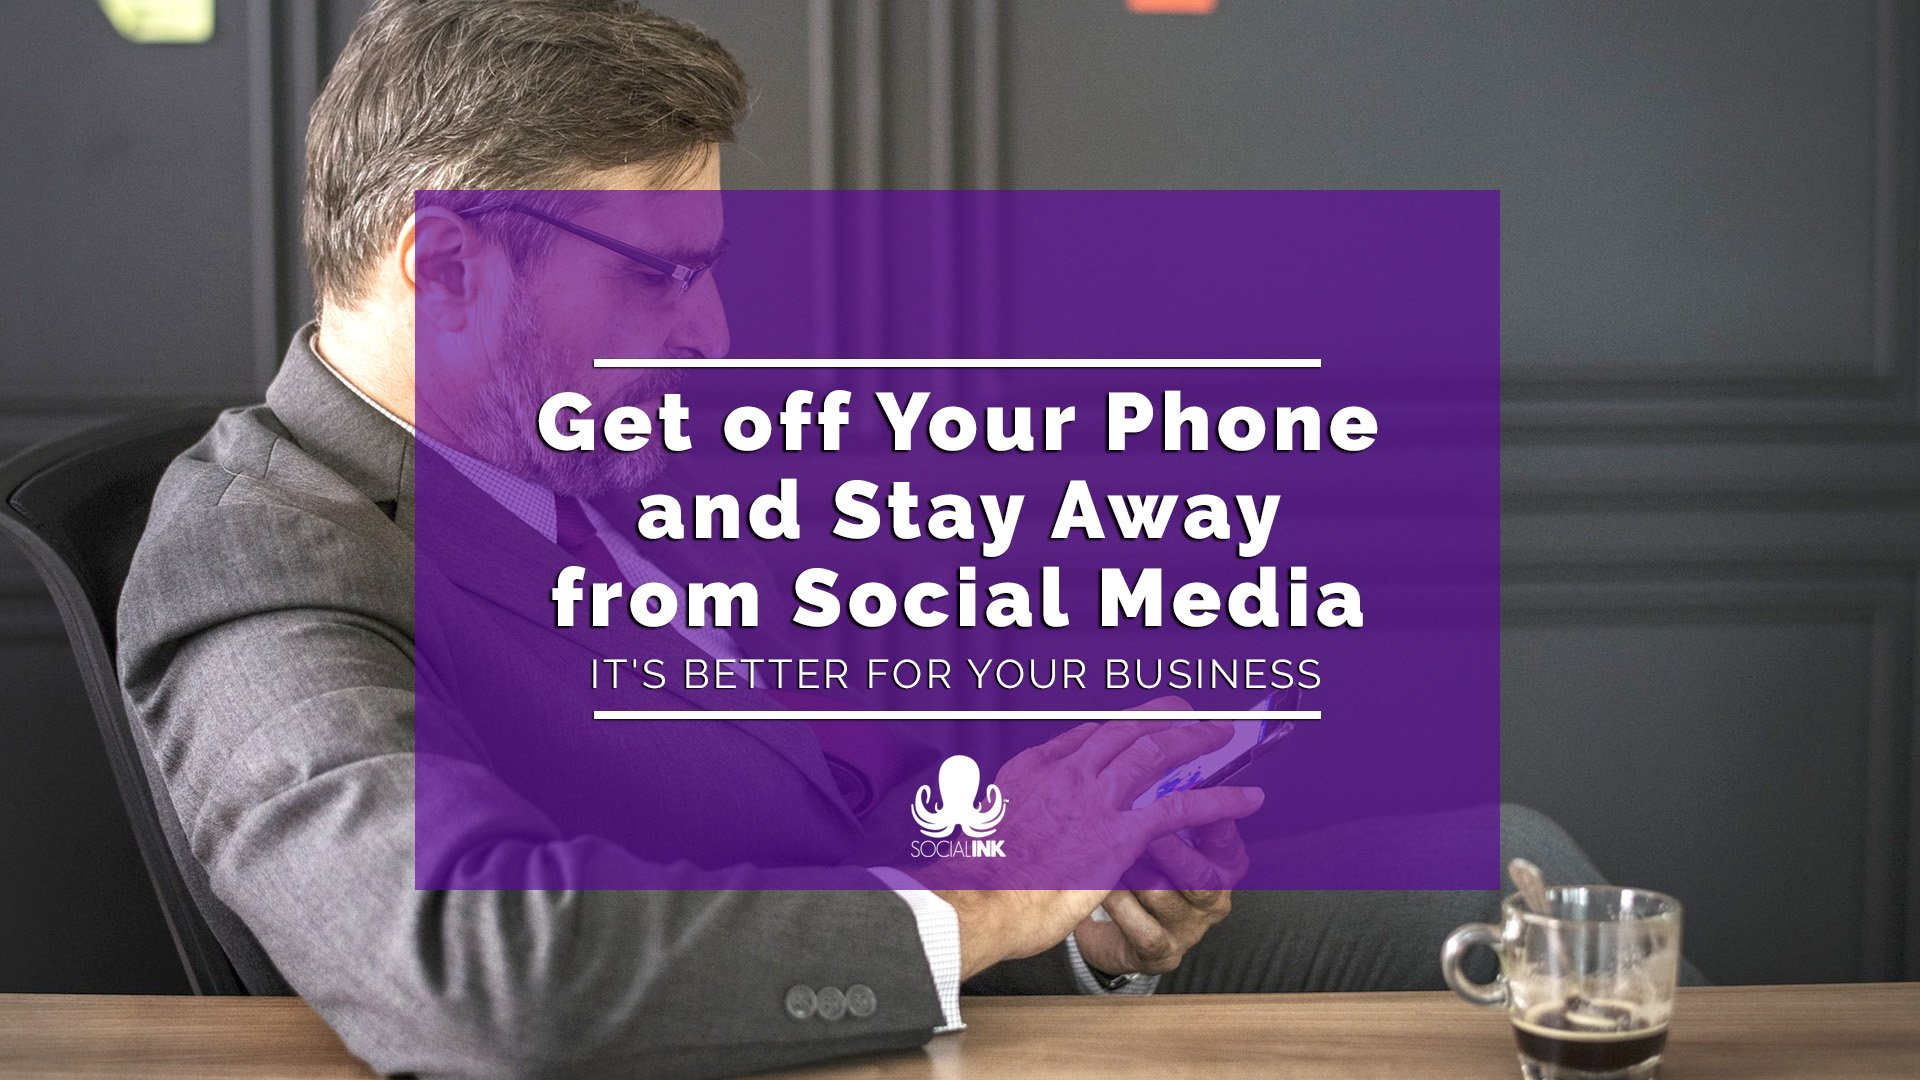 Get off Your Phone and Stay Away from Social Media. It's Better for Your Business.